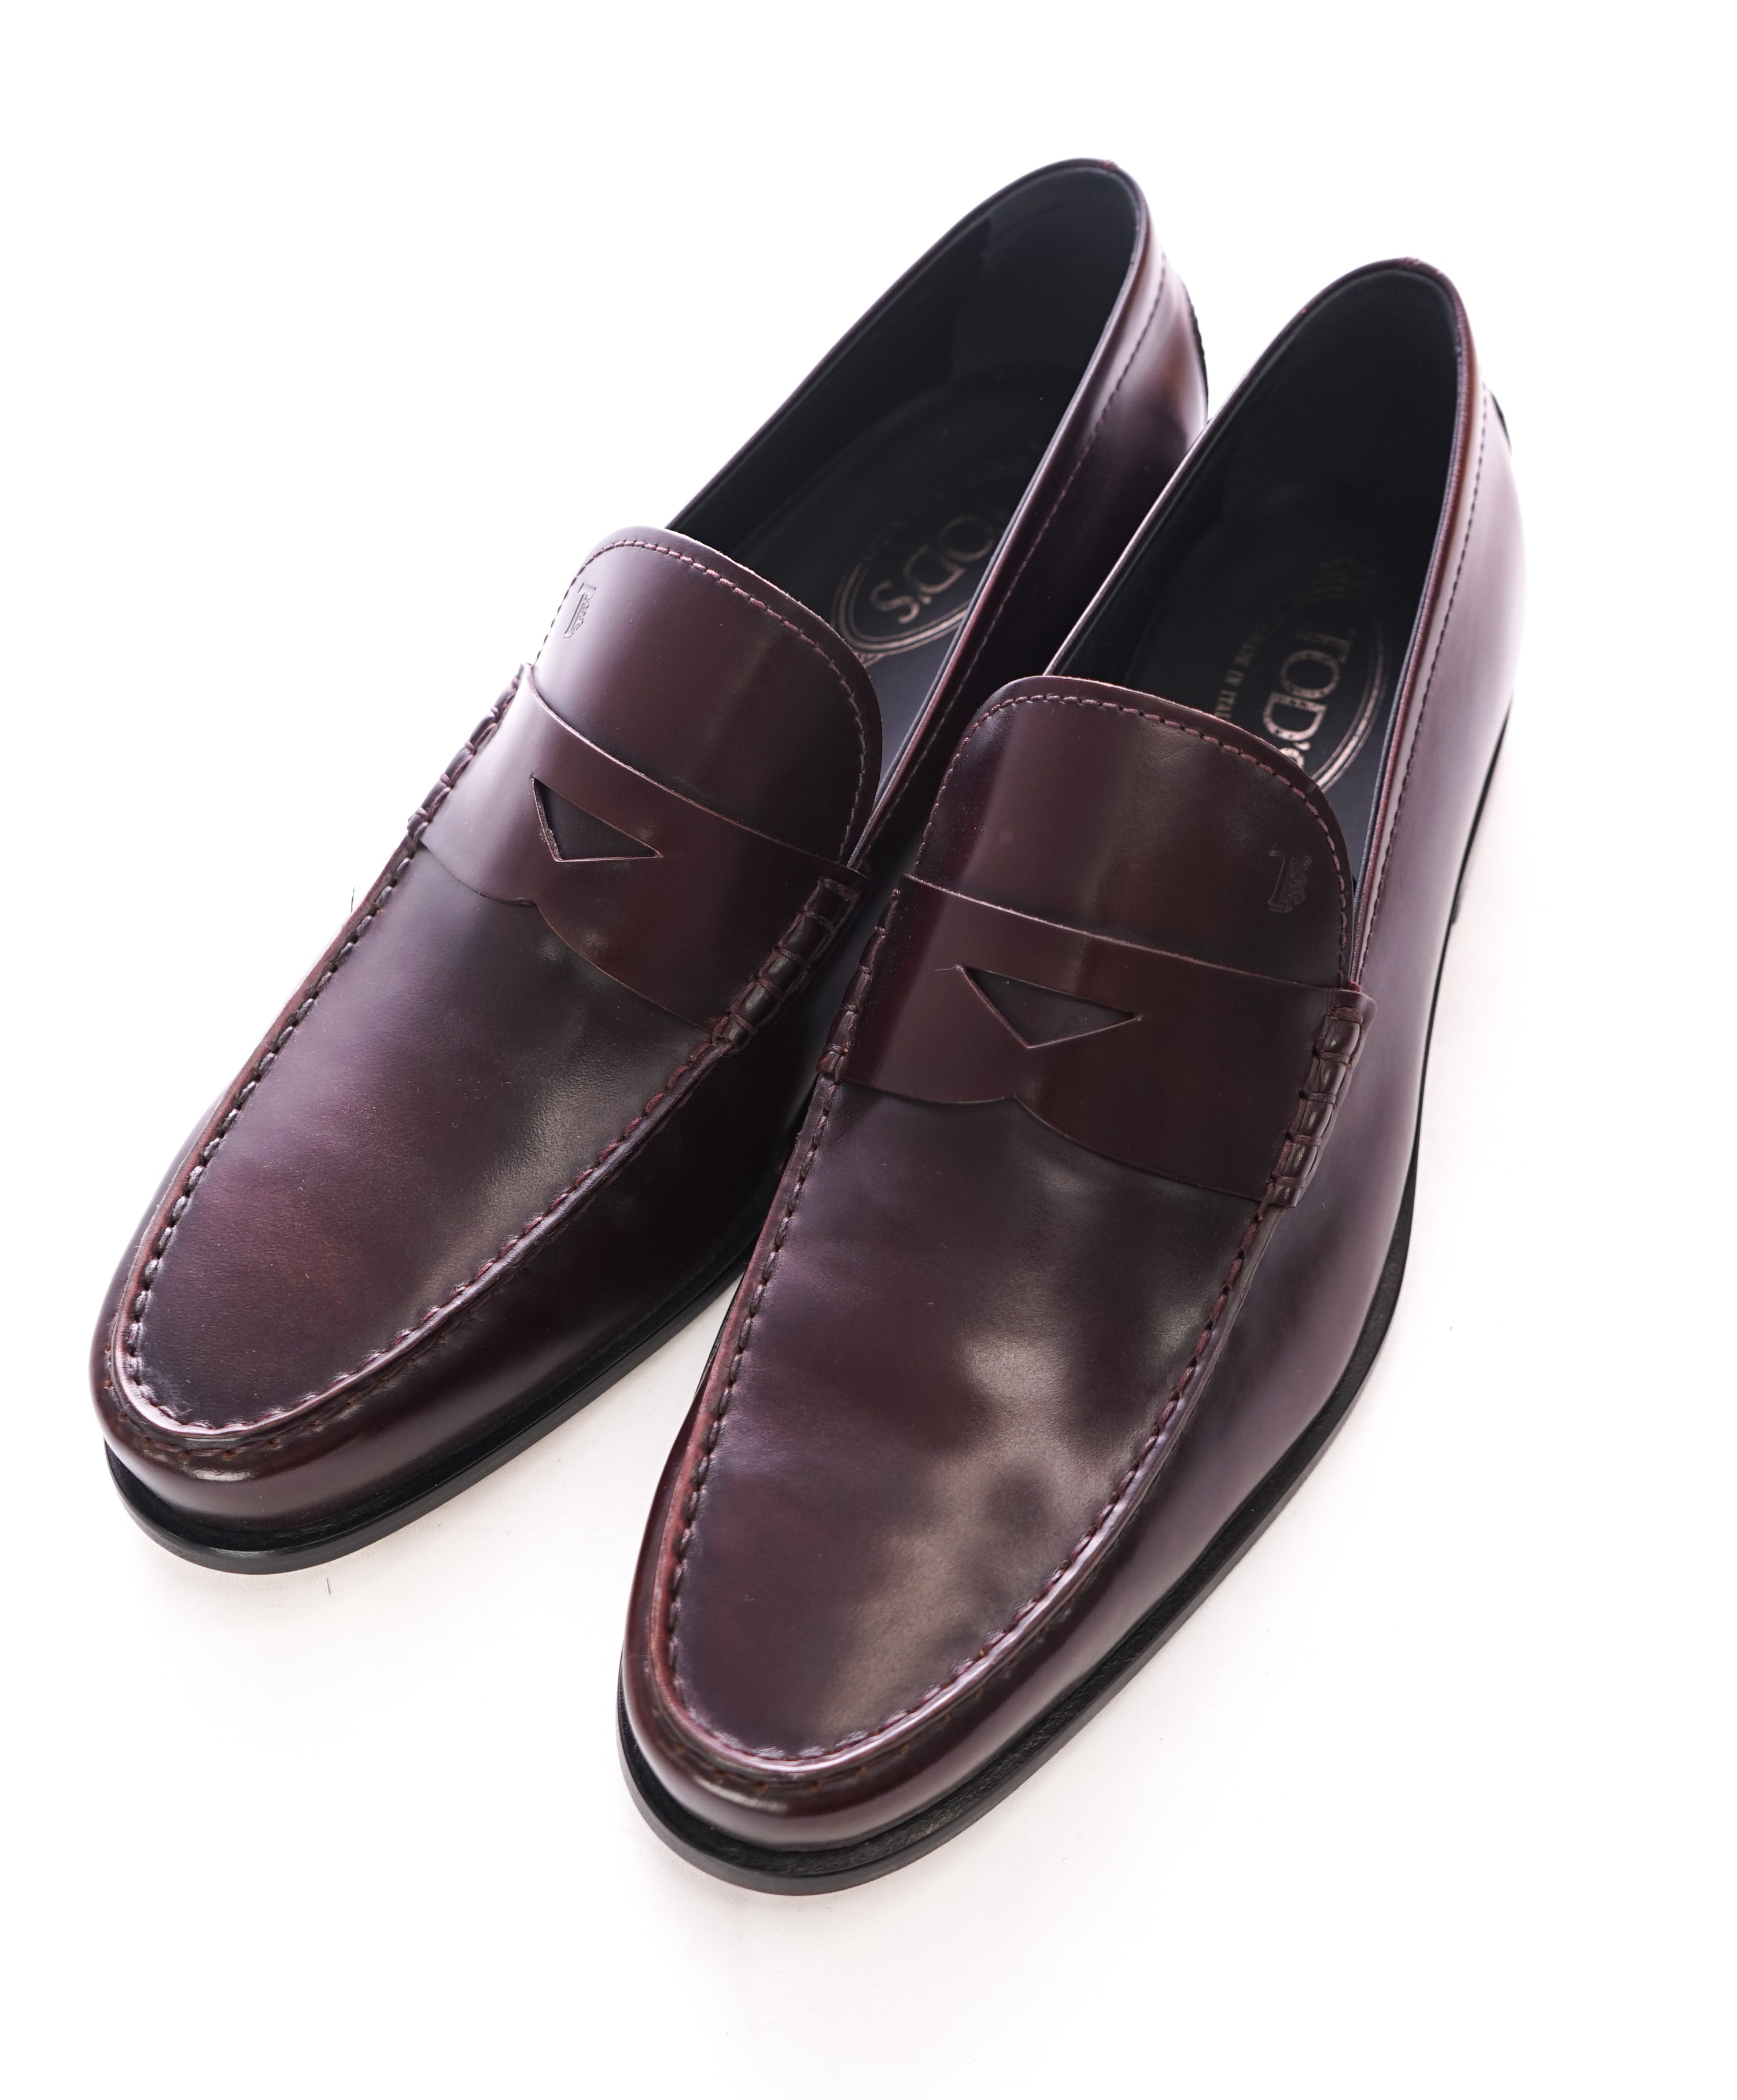 "TOD'S - Burgundy Oxblood Penny Loafers ""Boston /Devon"" Leather Sole - 12US"